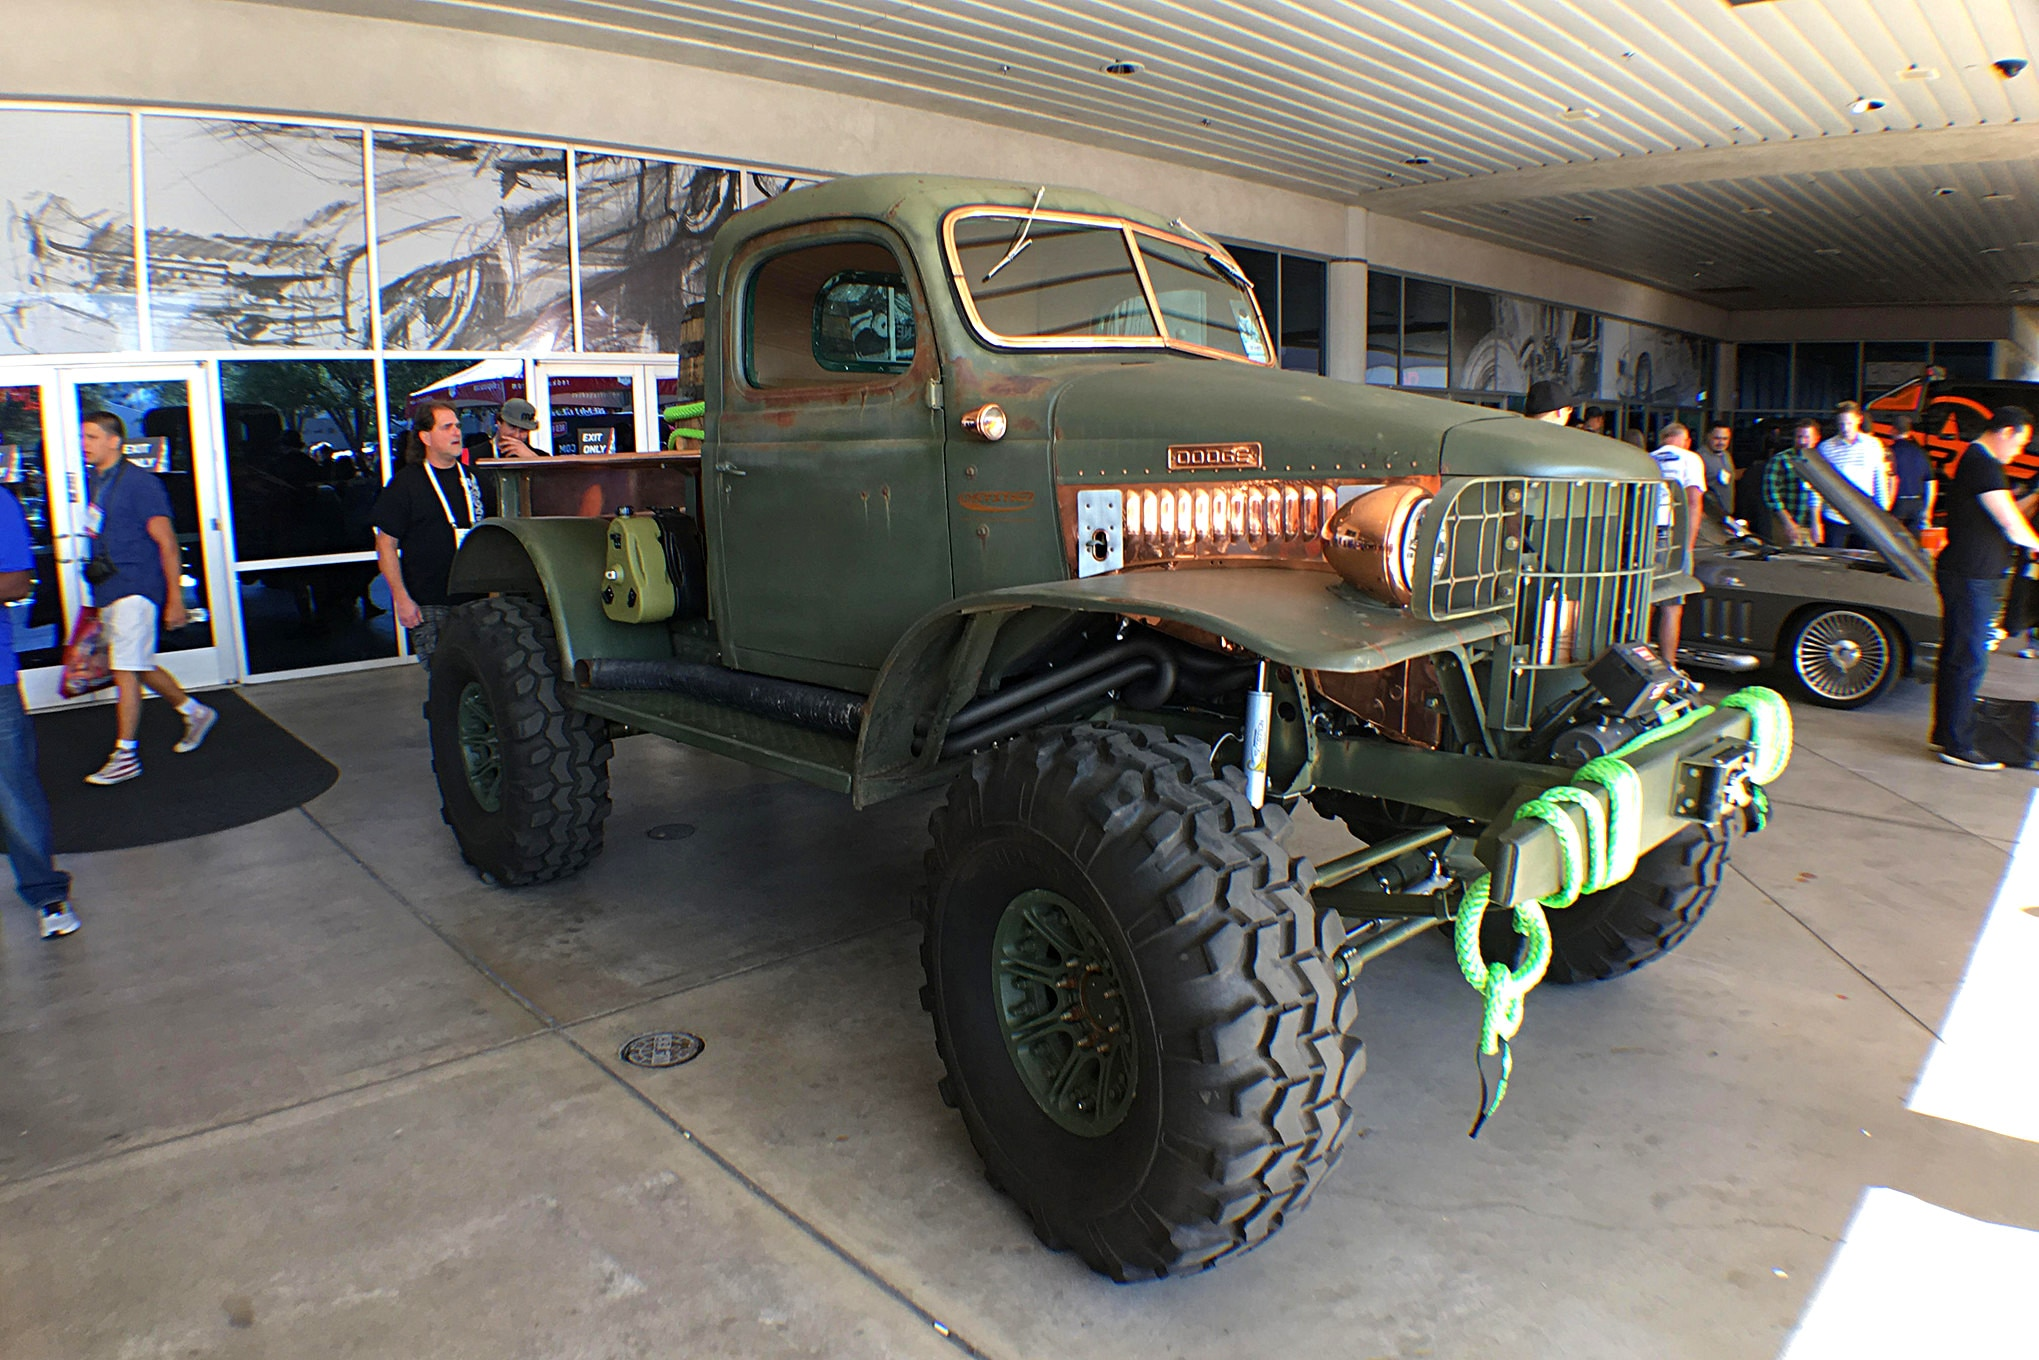 Now that's a Power Wagon.